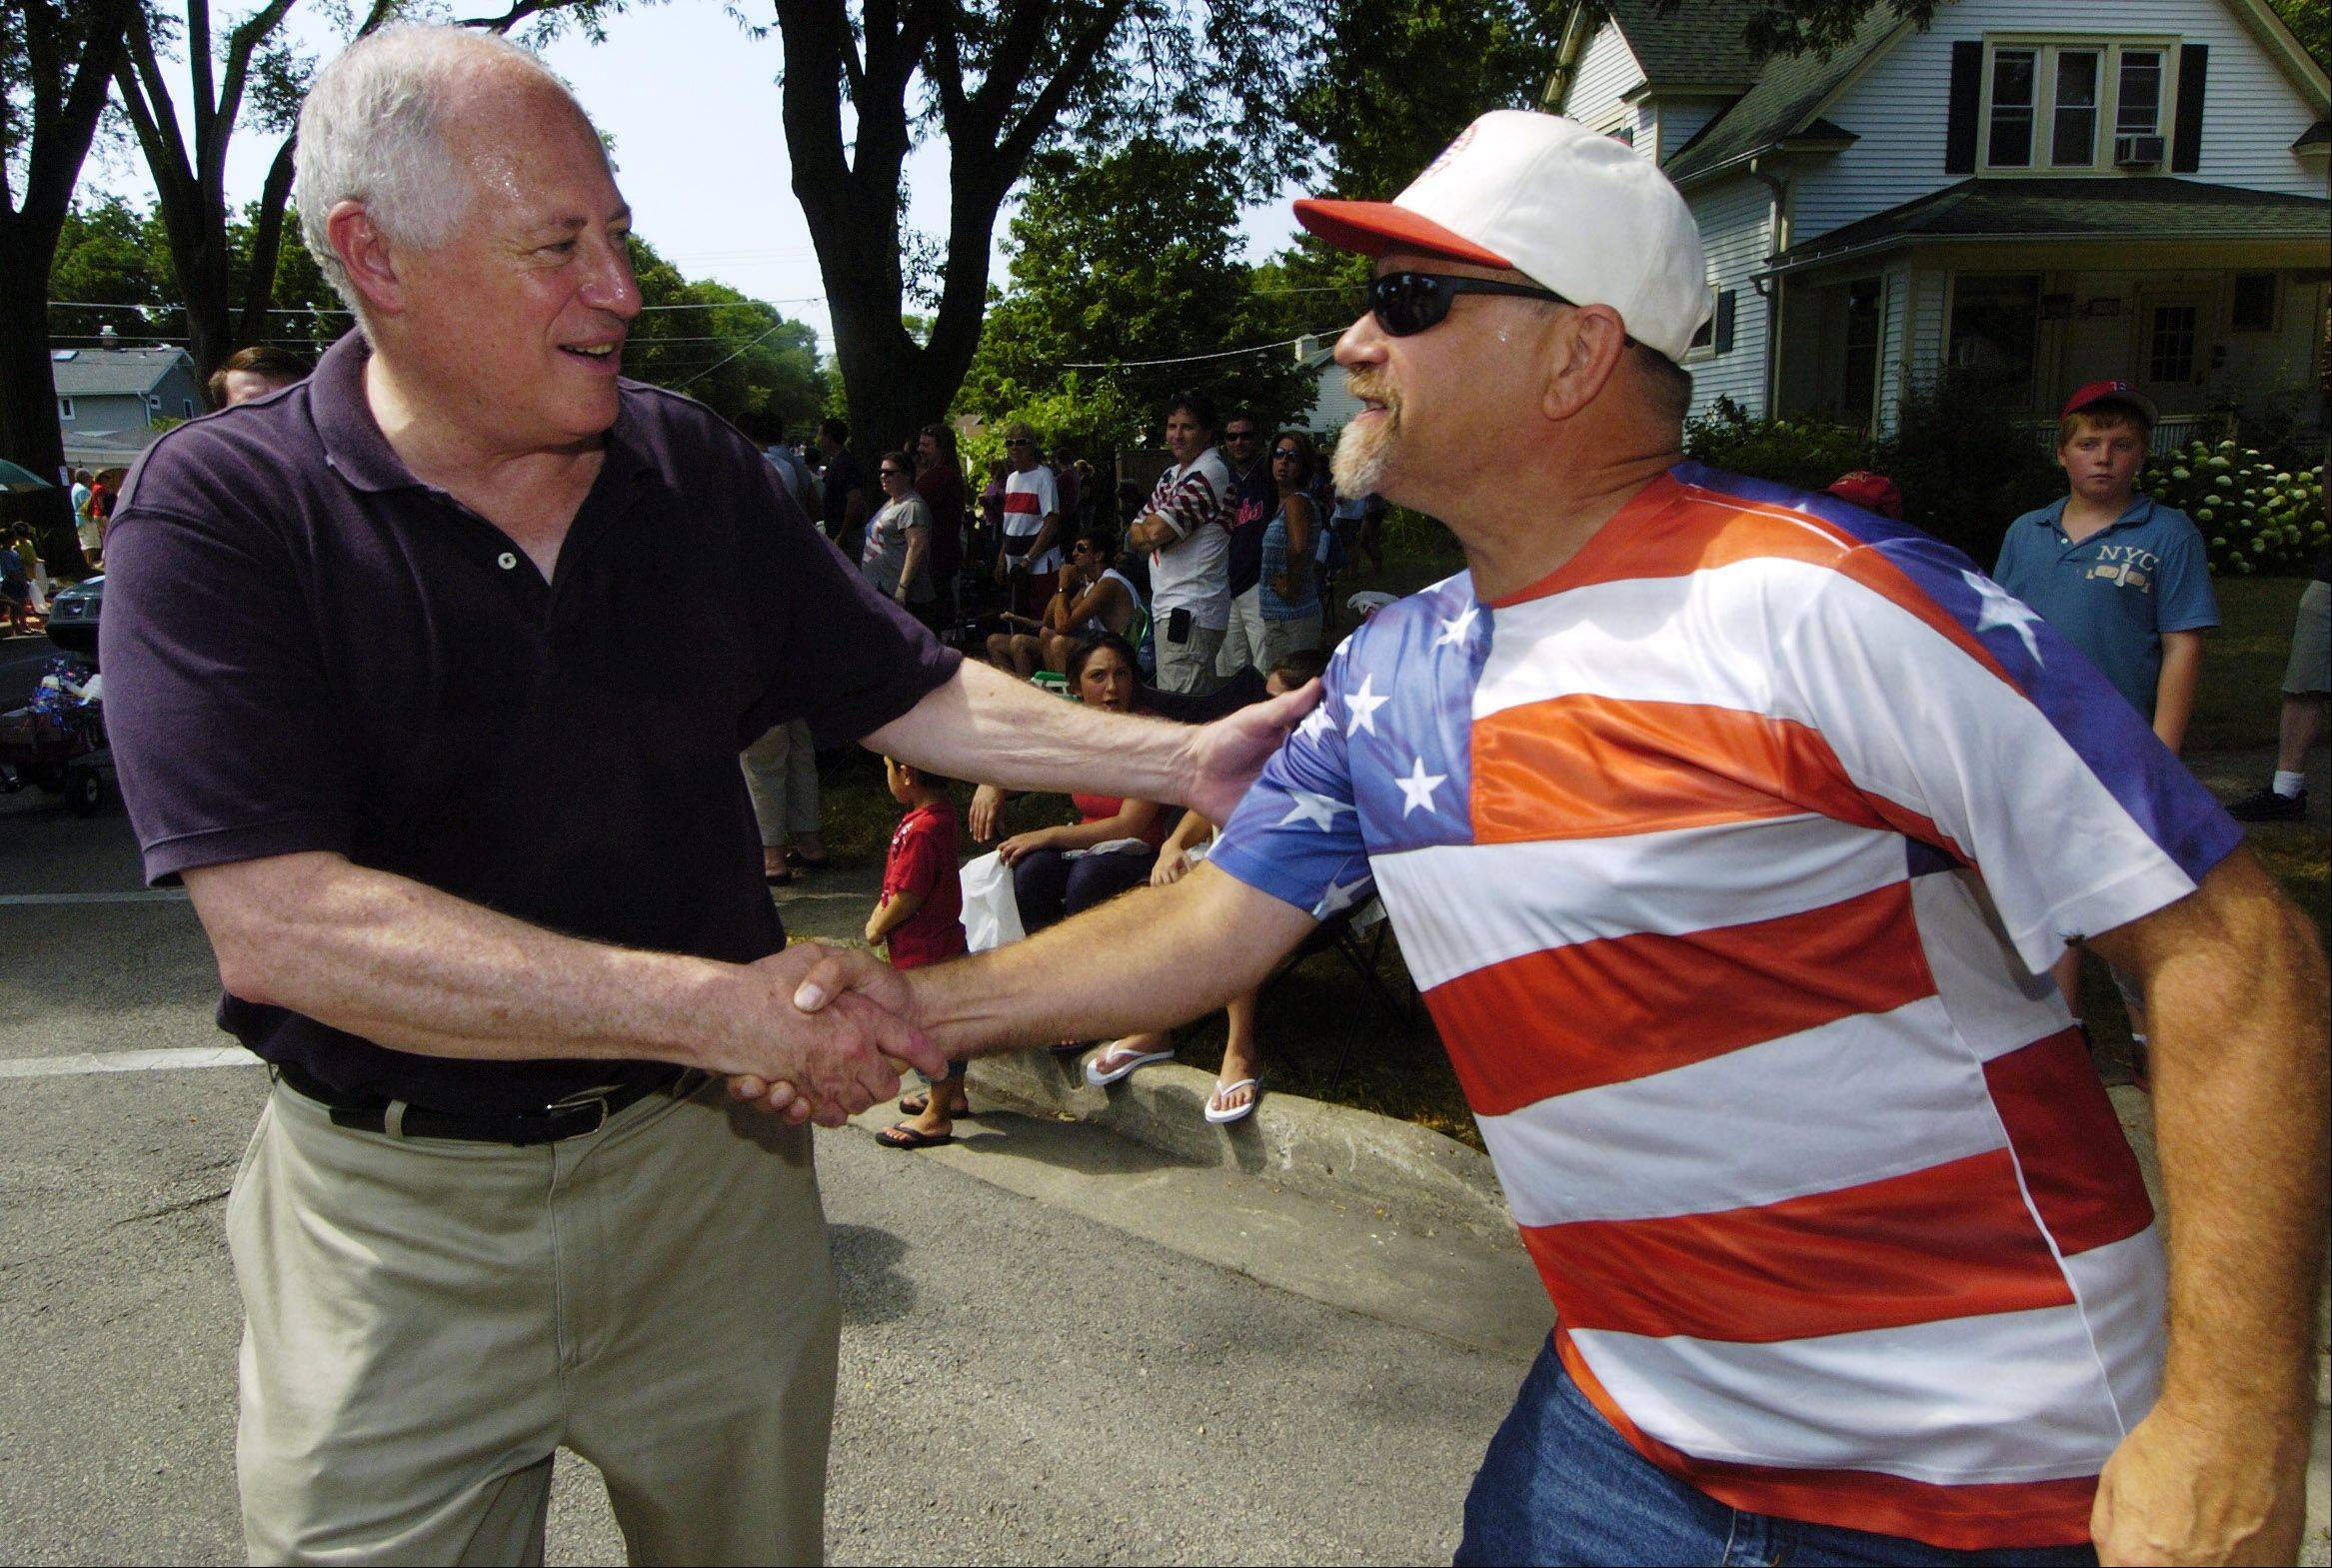 Gov. Pat Quinn greets Joel Long of Des Plaines during the Des Plaines Fourth of July parade.